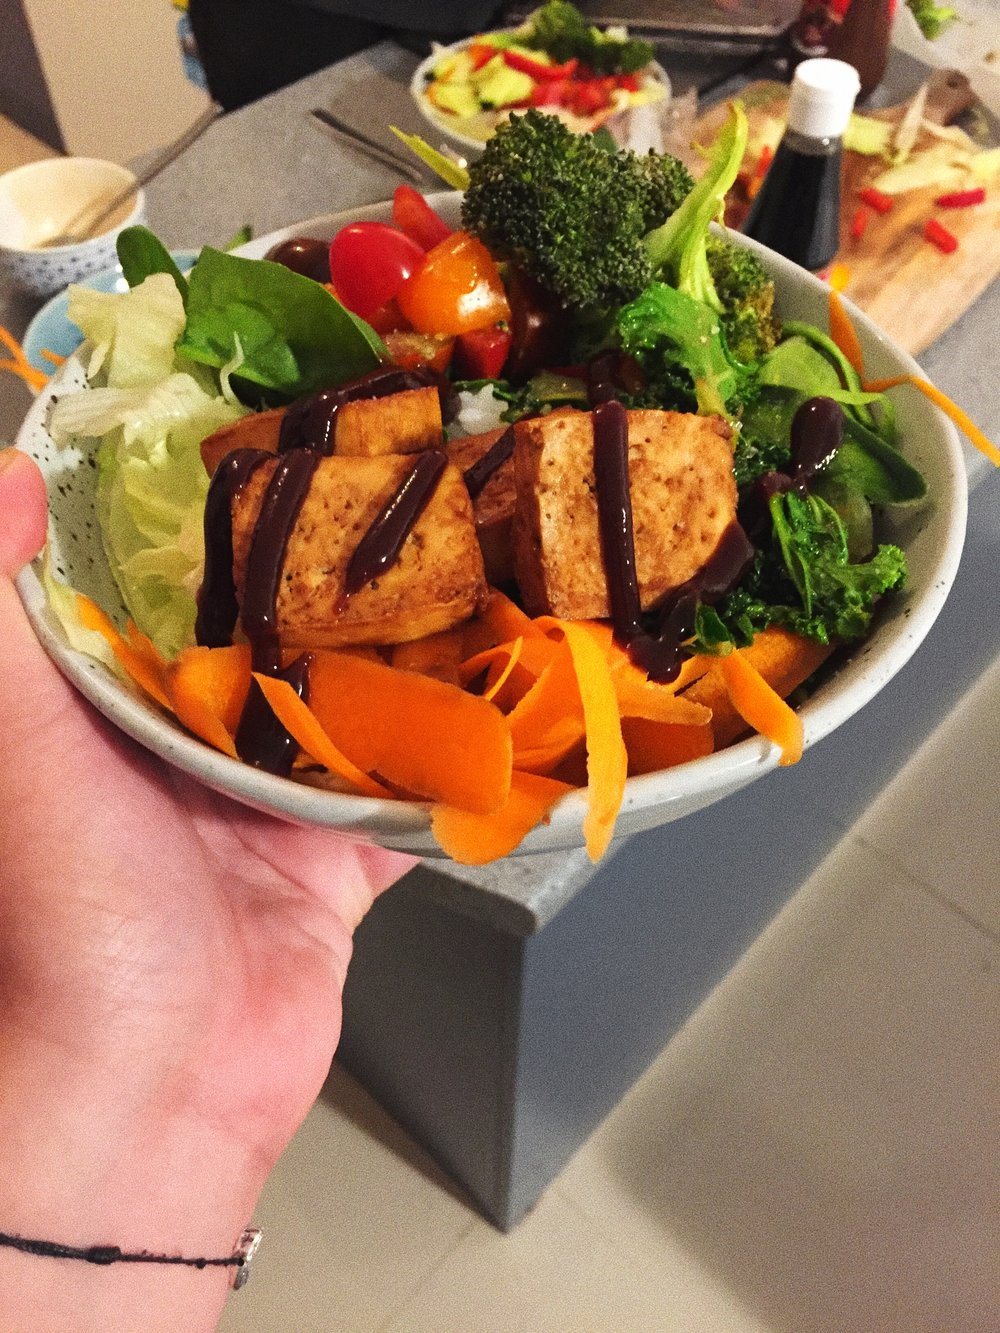 Sushi Bowl - Sometimes you just feel like a whole lot of veges. So whats better than said veges with rice & teriyaki tofu. Easy to make and so nourishing too!